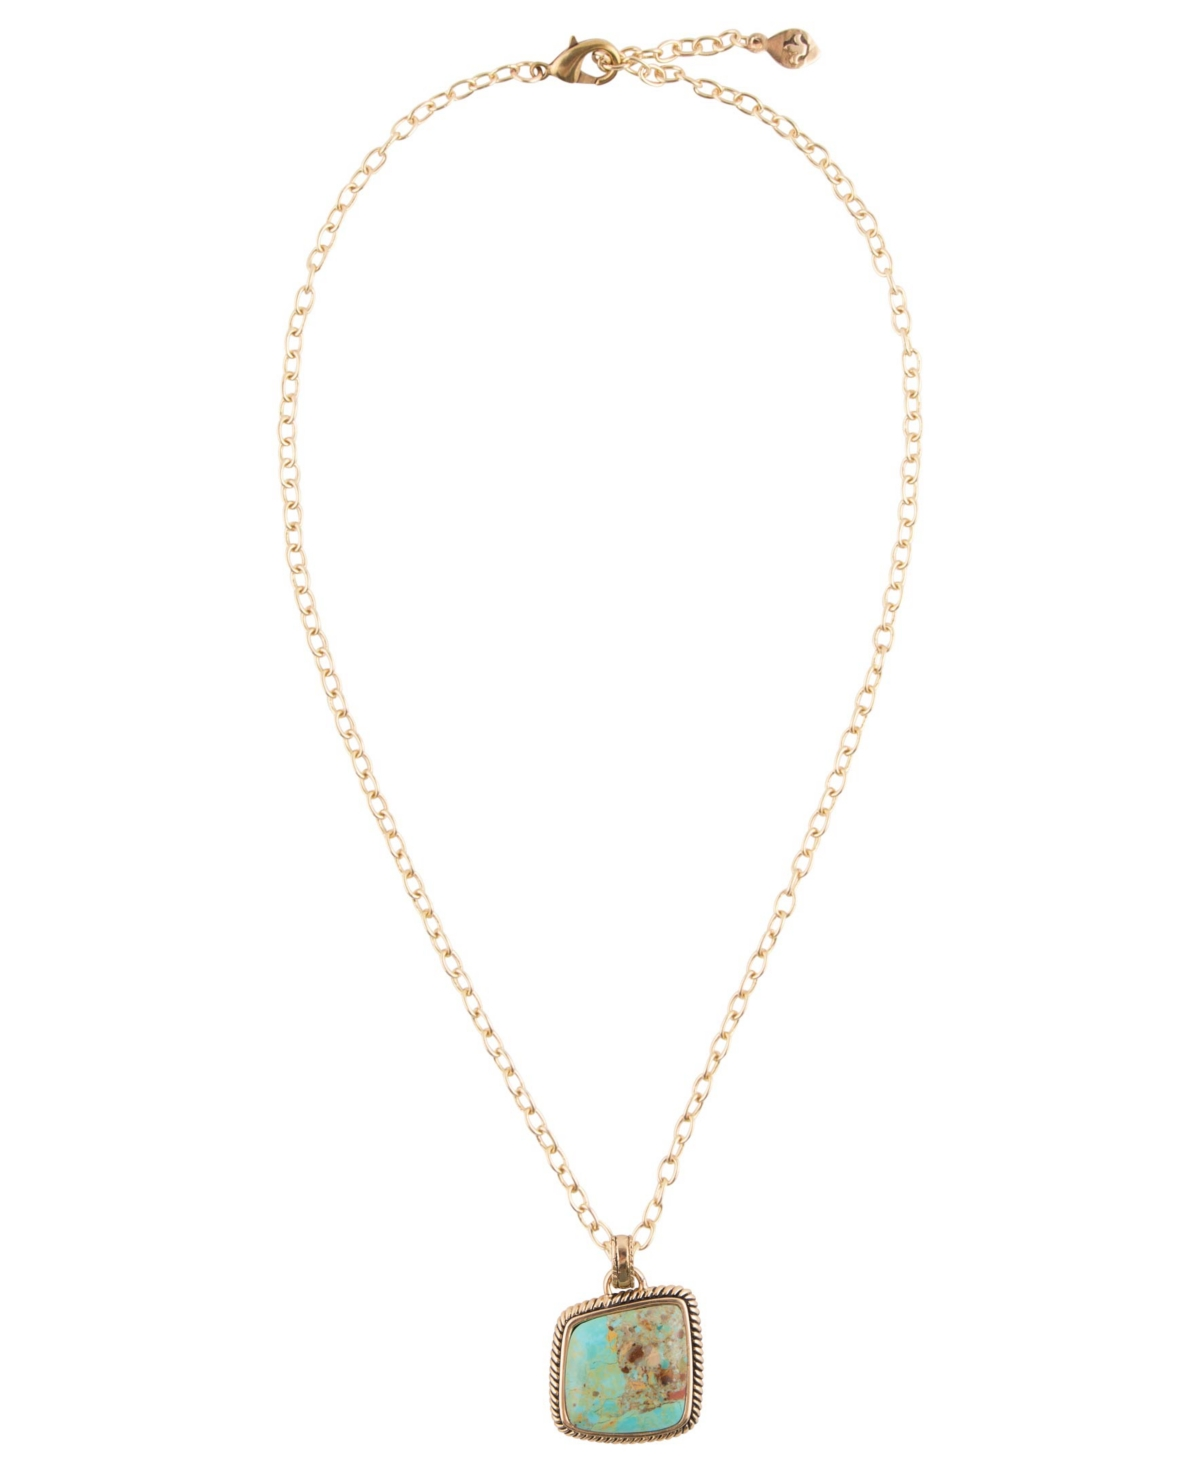 Barse Boulder Bronze and Genuine Turquoise Pendant on Chain Necklace